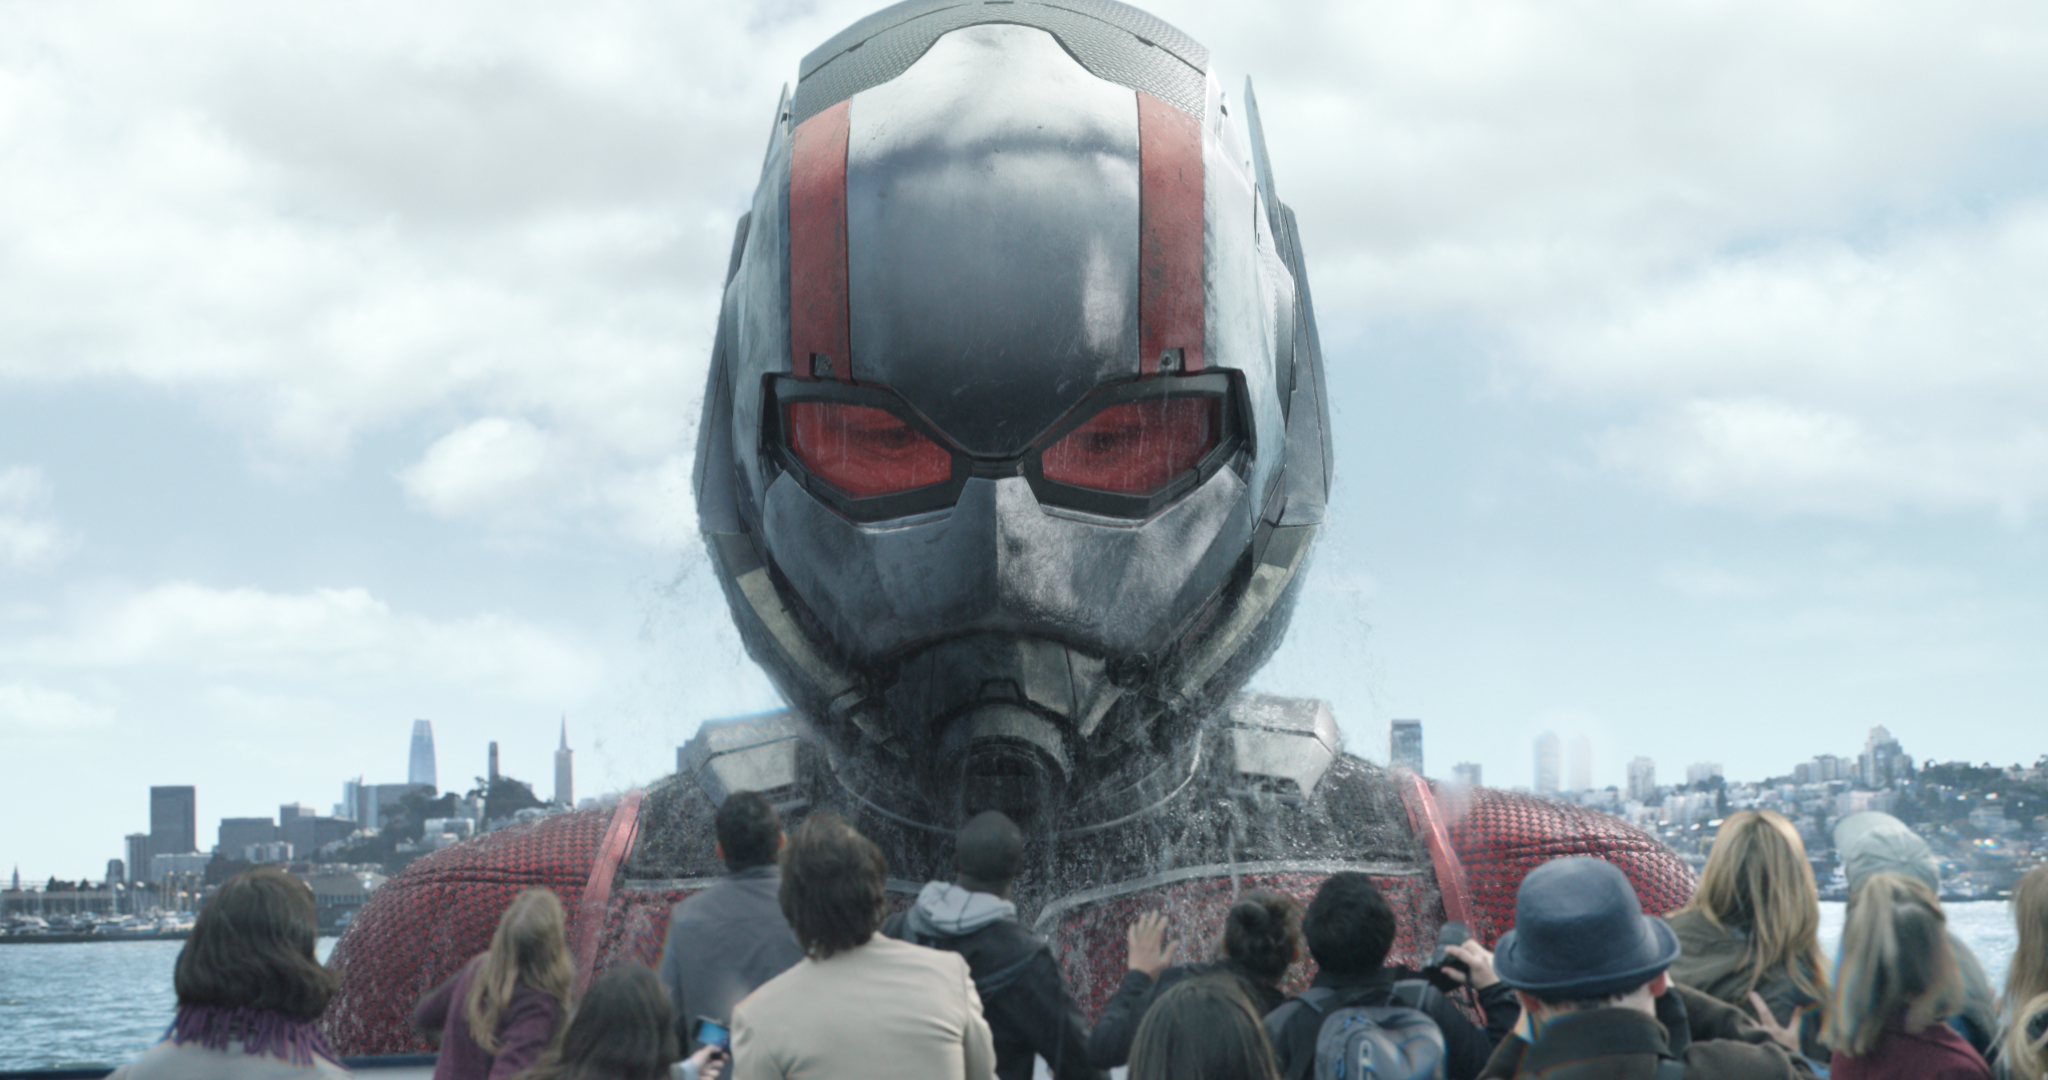 Ant-Man/Scott Lang in his Giant-Man form (Paul Rudd)                                                                  Photo: Film Frame                                                                  ©Marvel Studios 2018